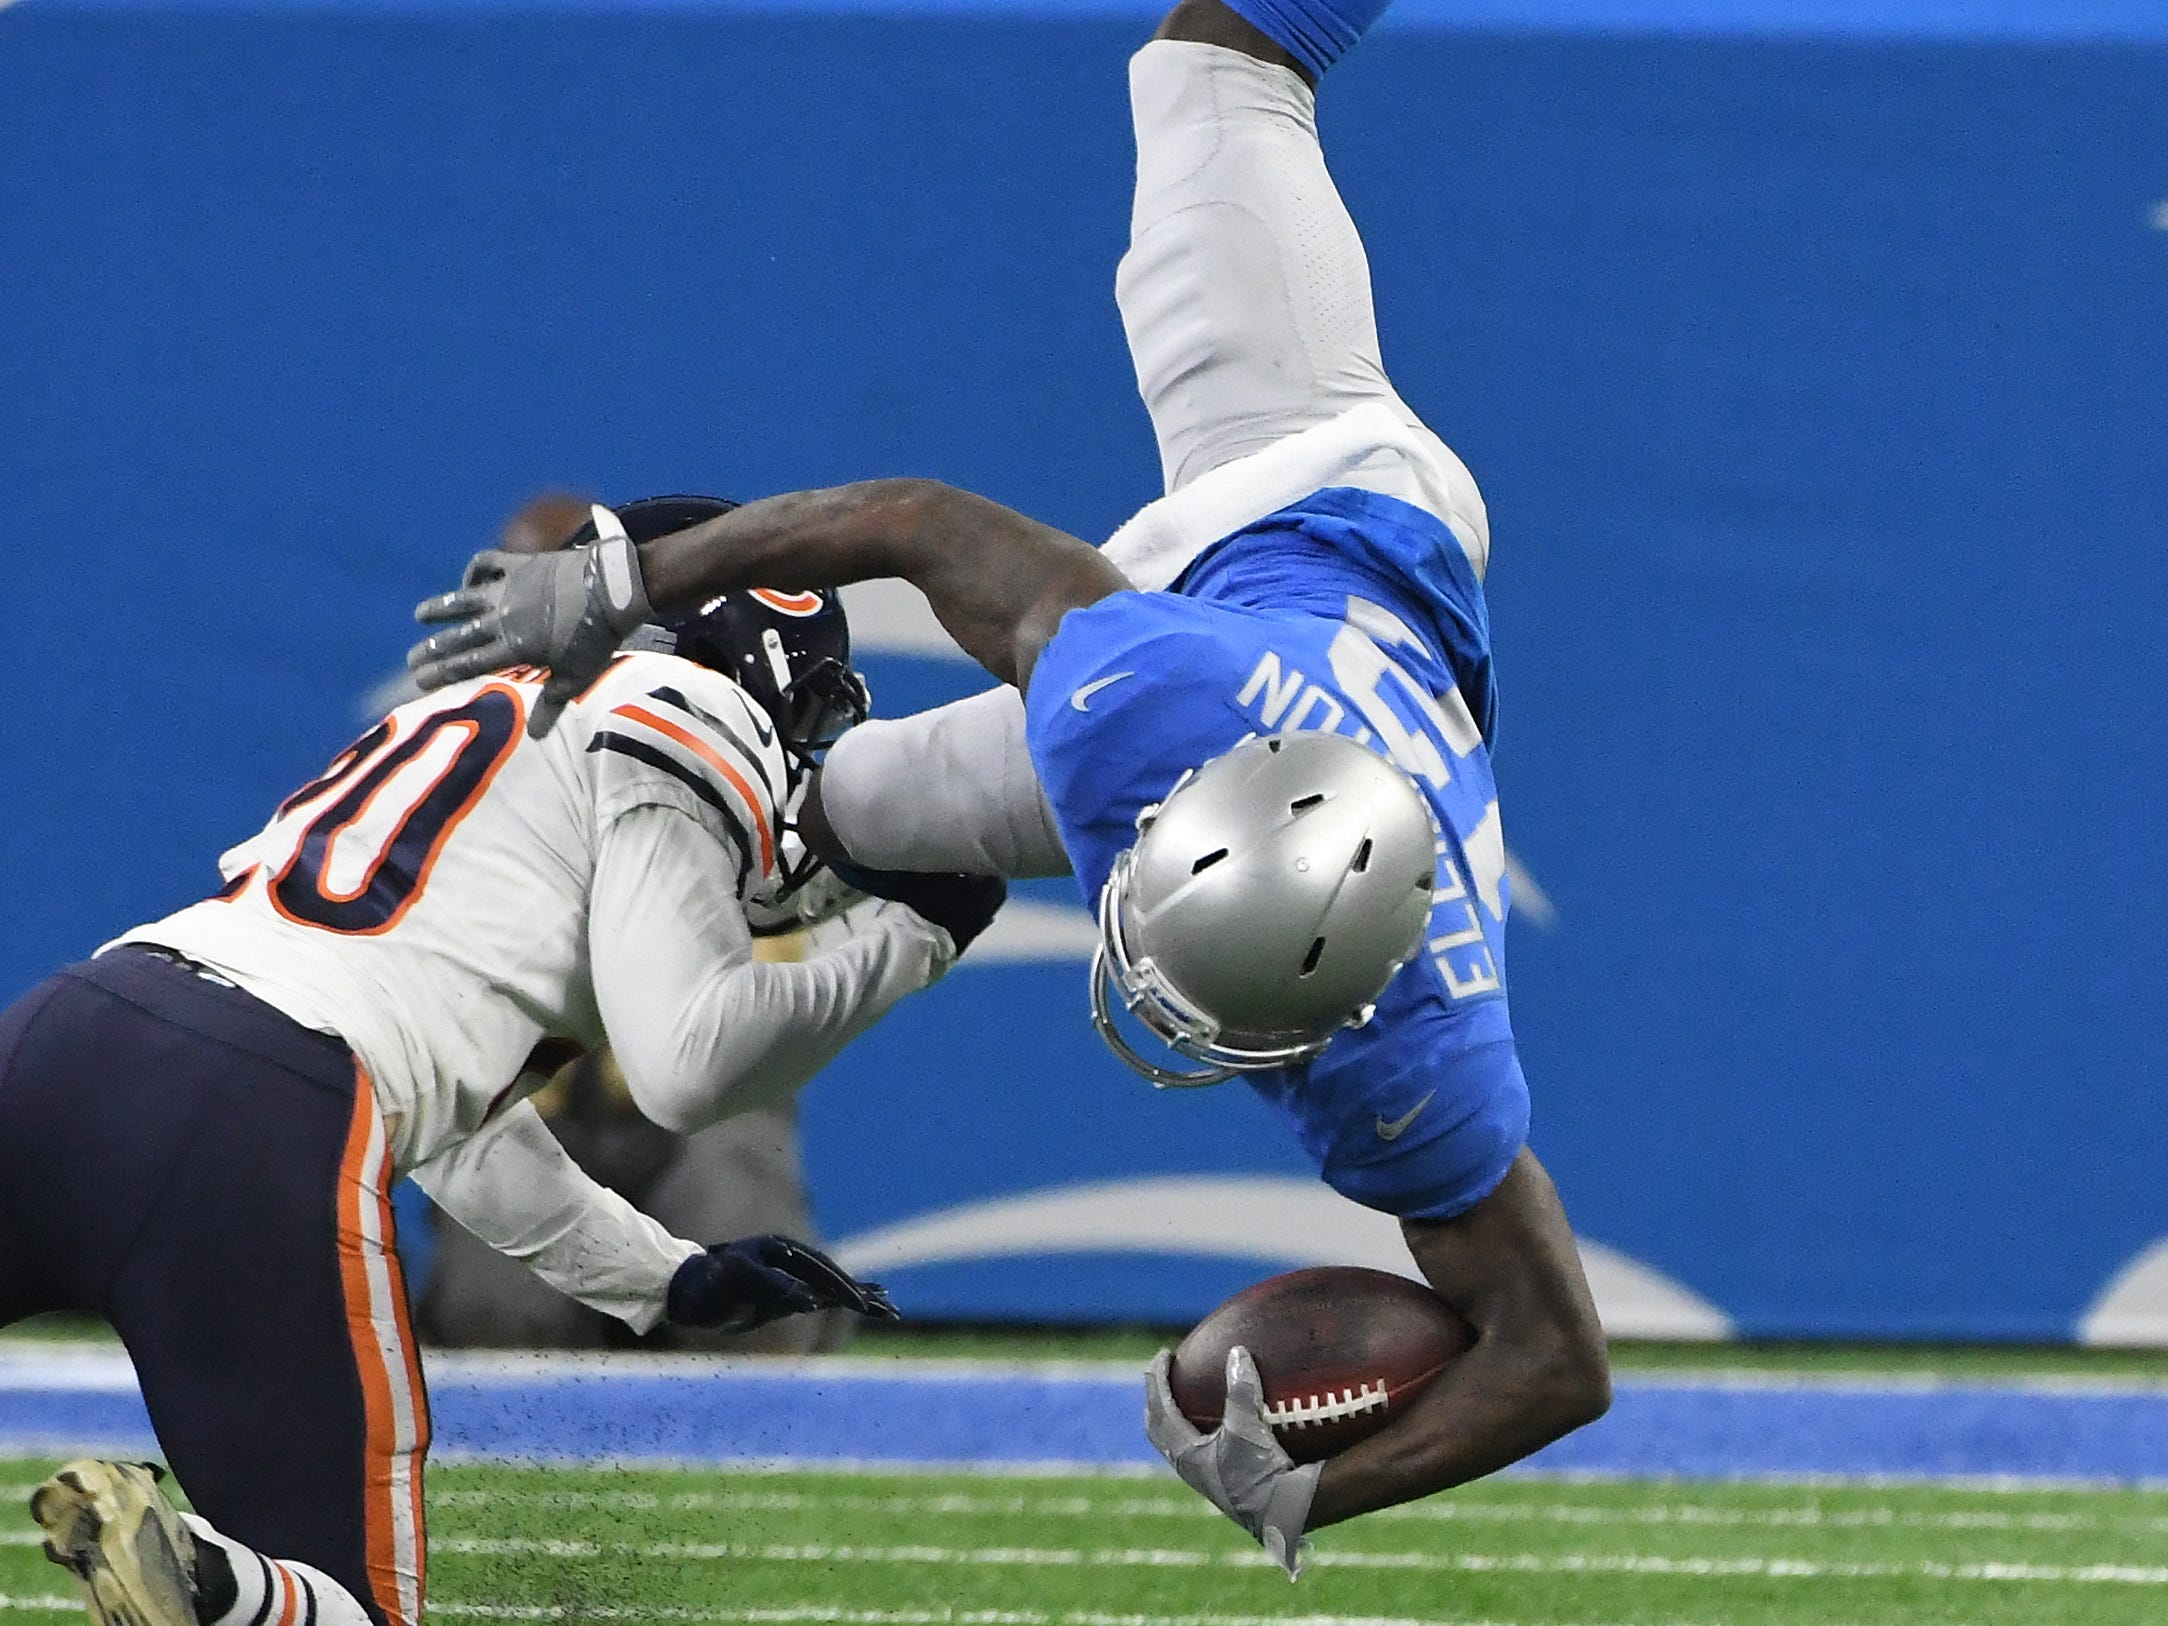 Lions' Bruce Ellington is upended by Bears' Prince Amukamara in the second quarter.